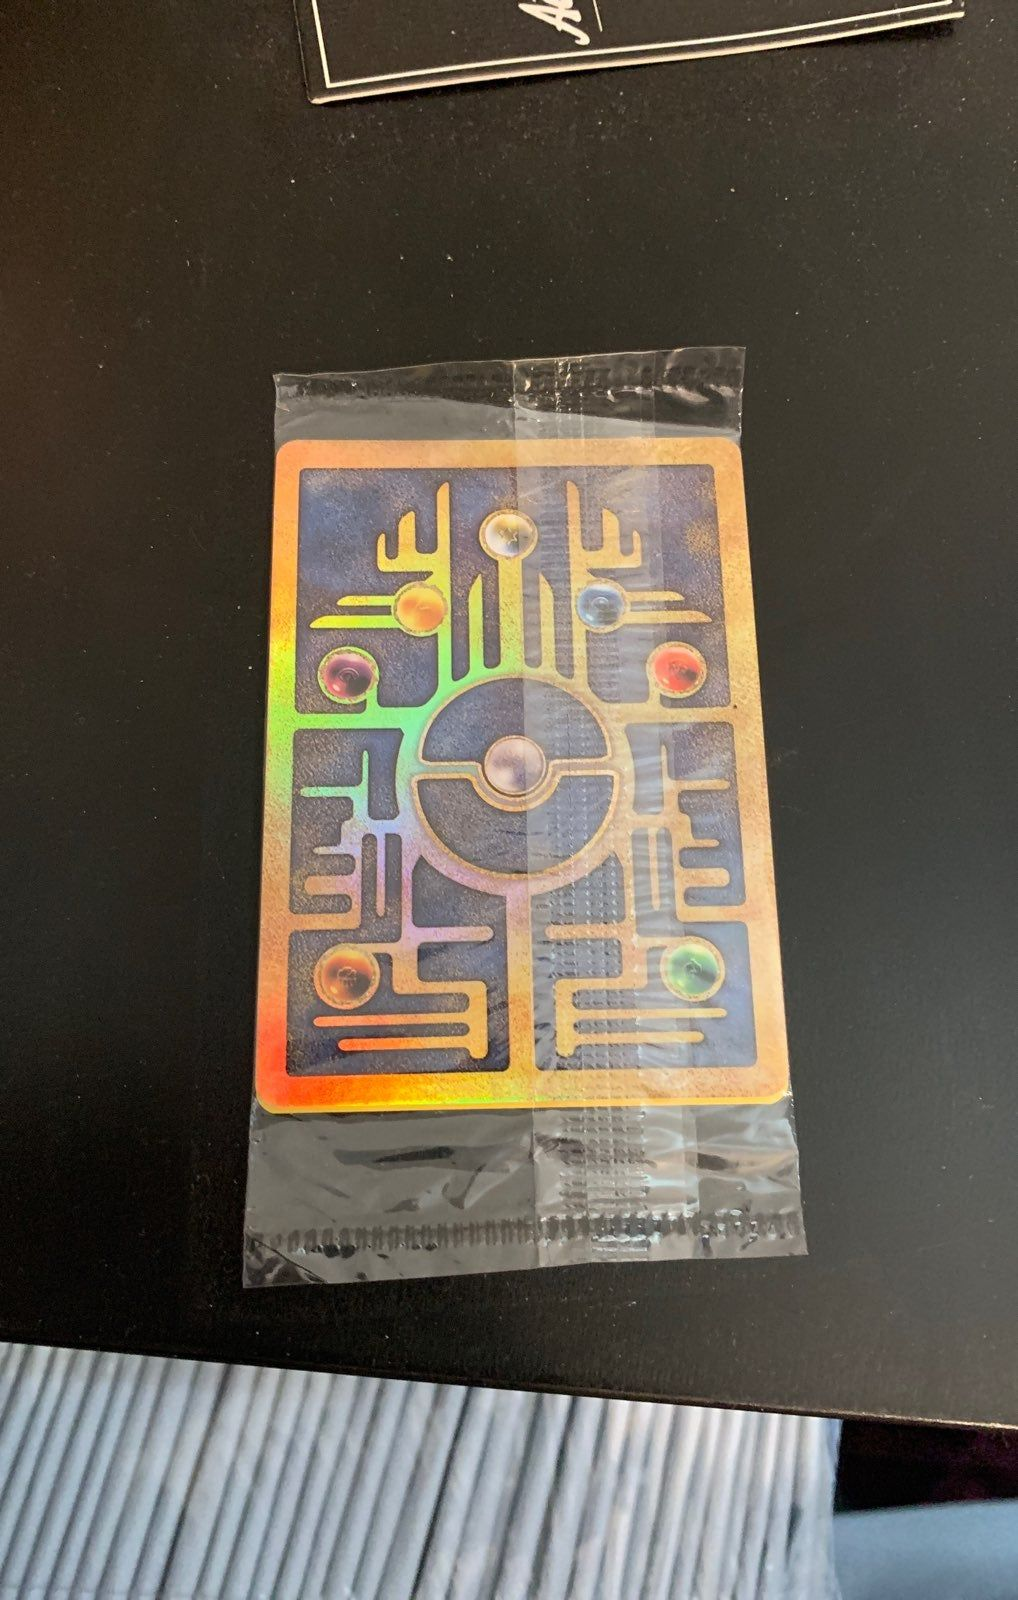 HARD TO FIND ANCIENT MEW POKÉMON CARD WAS RELEASE 2000 for